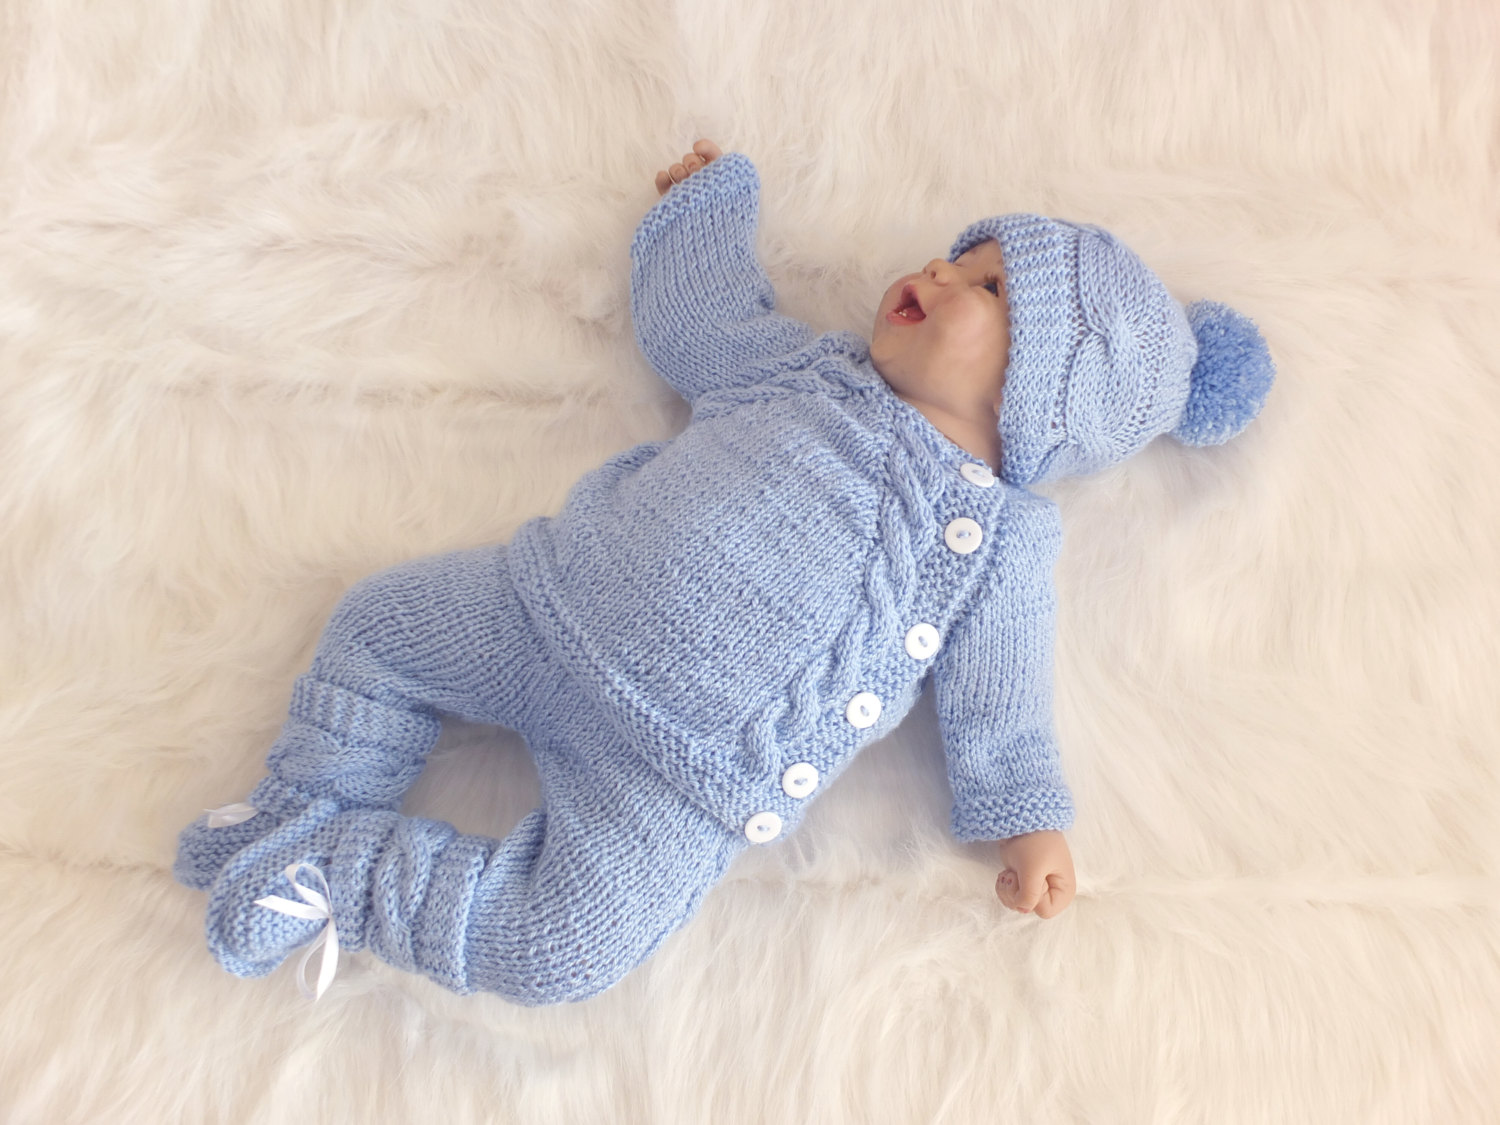 knitted baby clothes handmade by inese eusgmxk